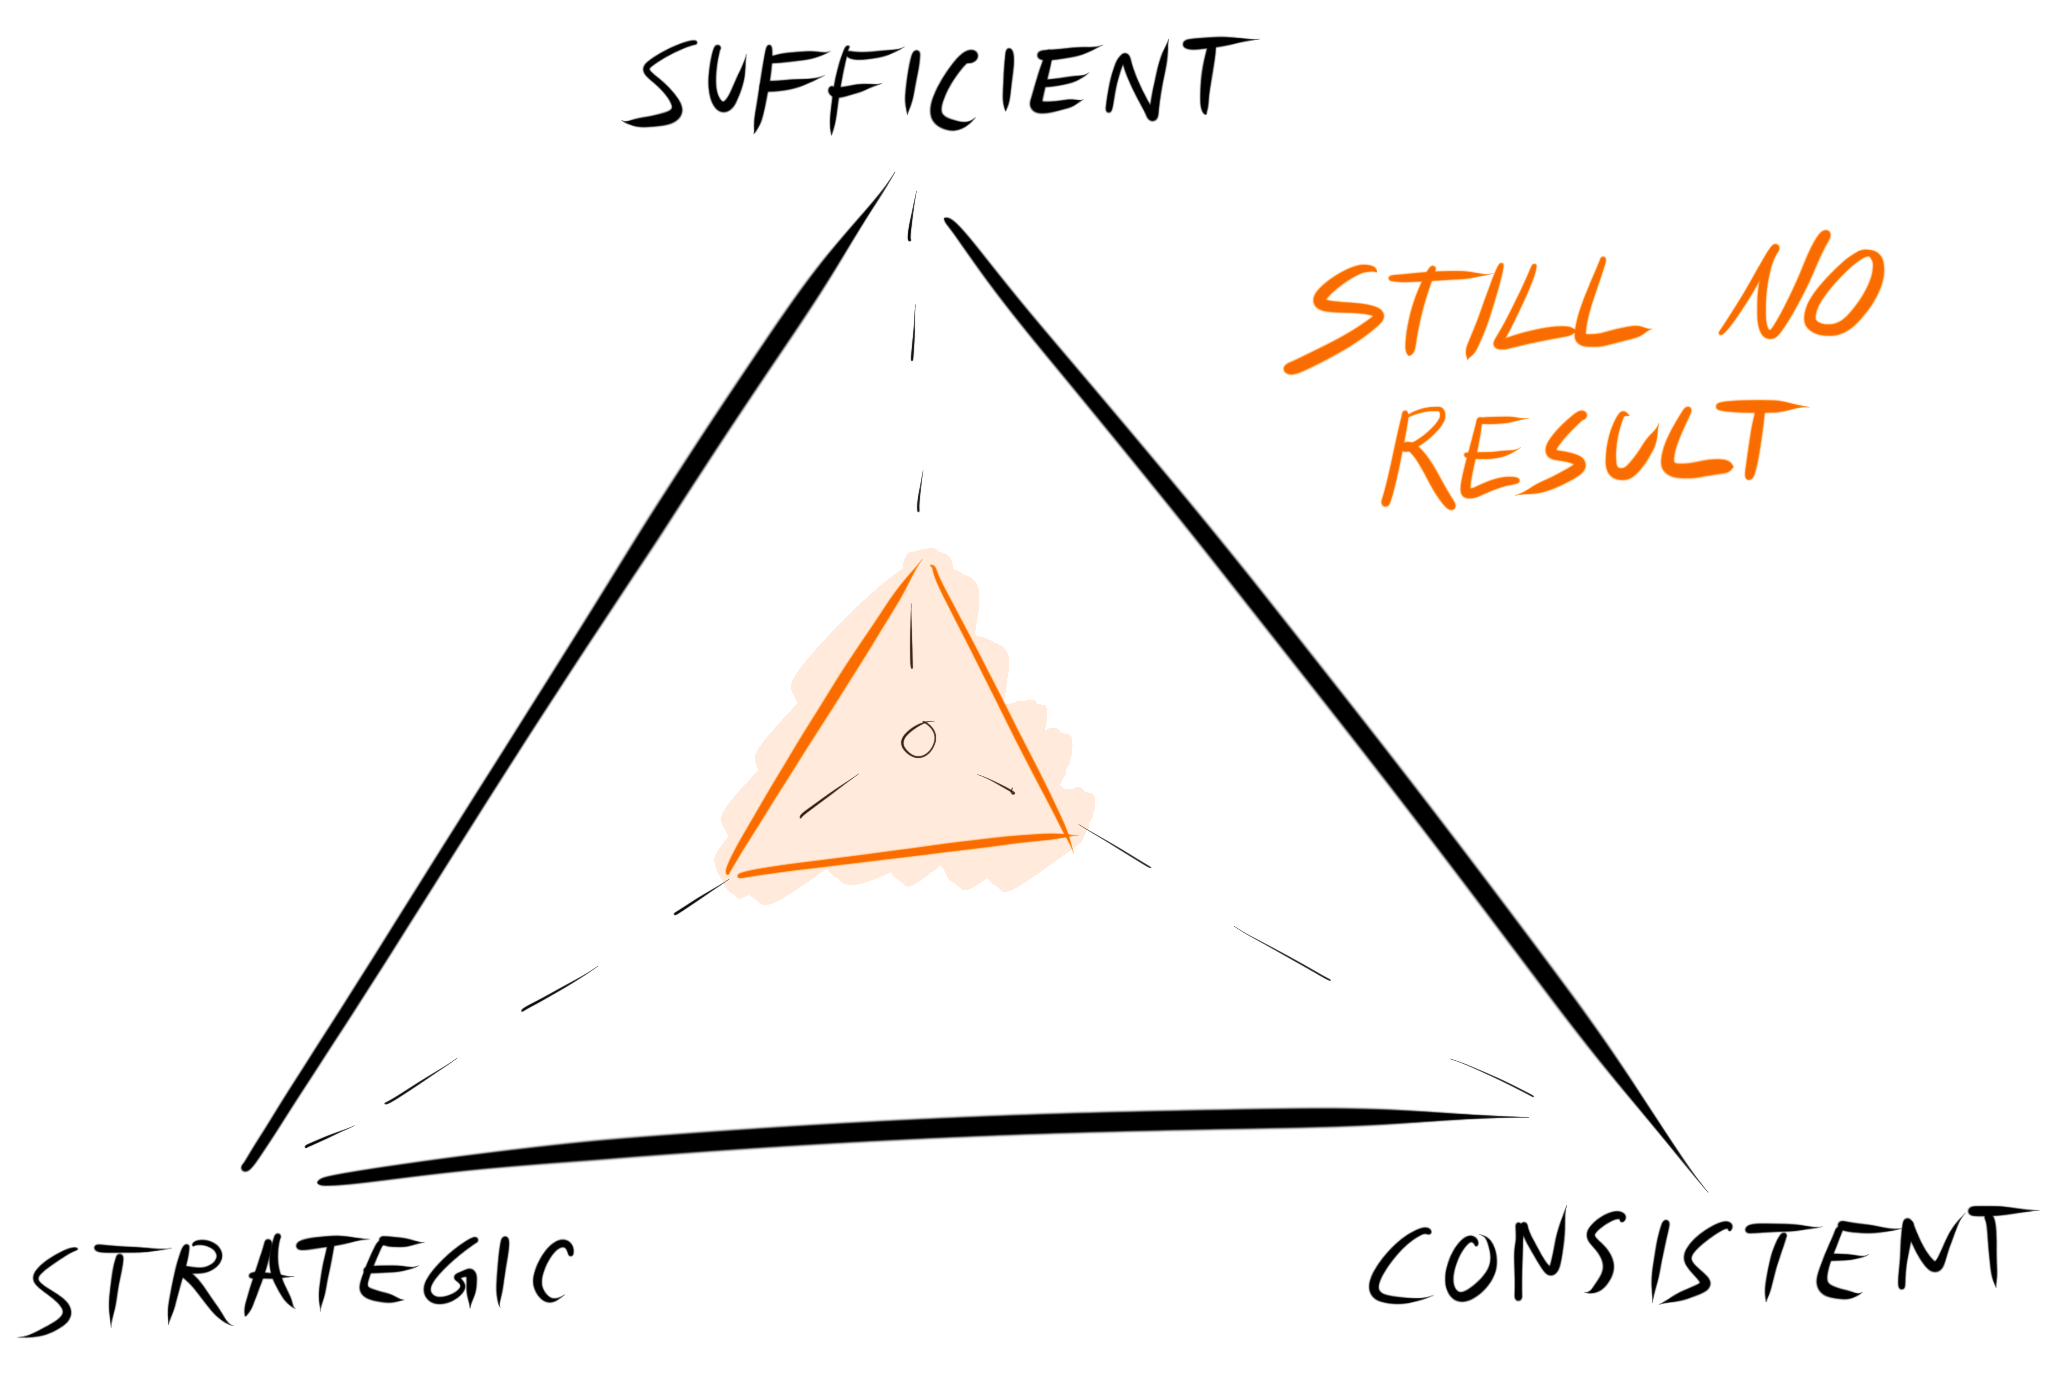 low strategy, sufficiency and consistency